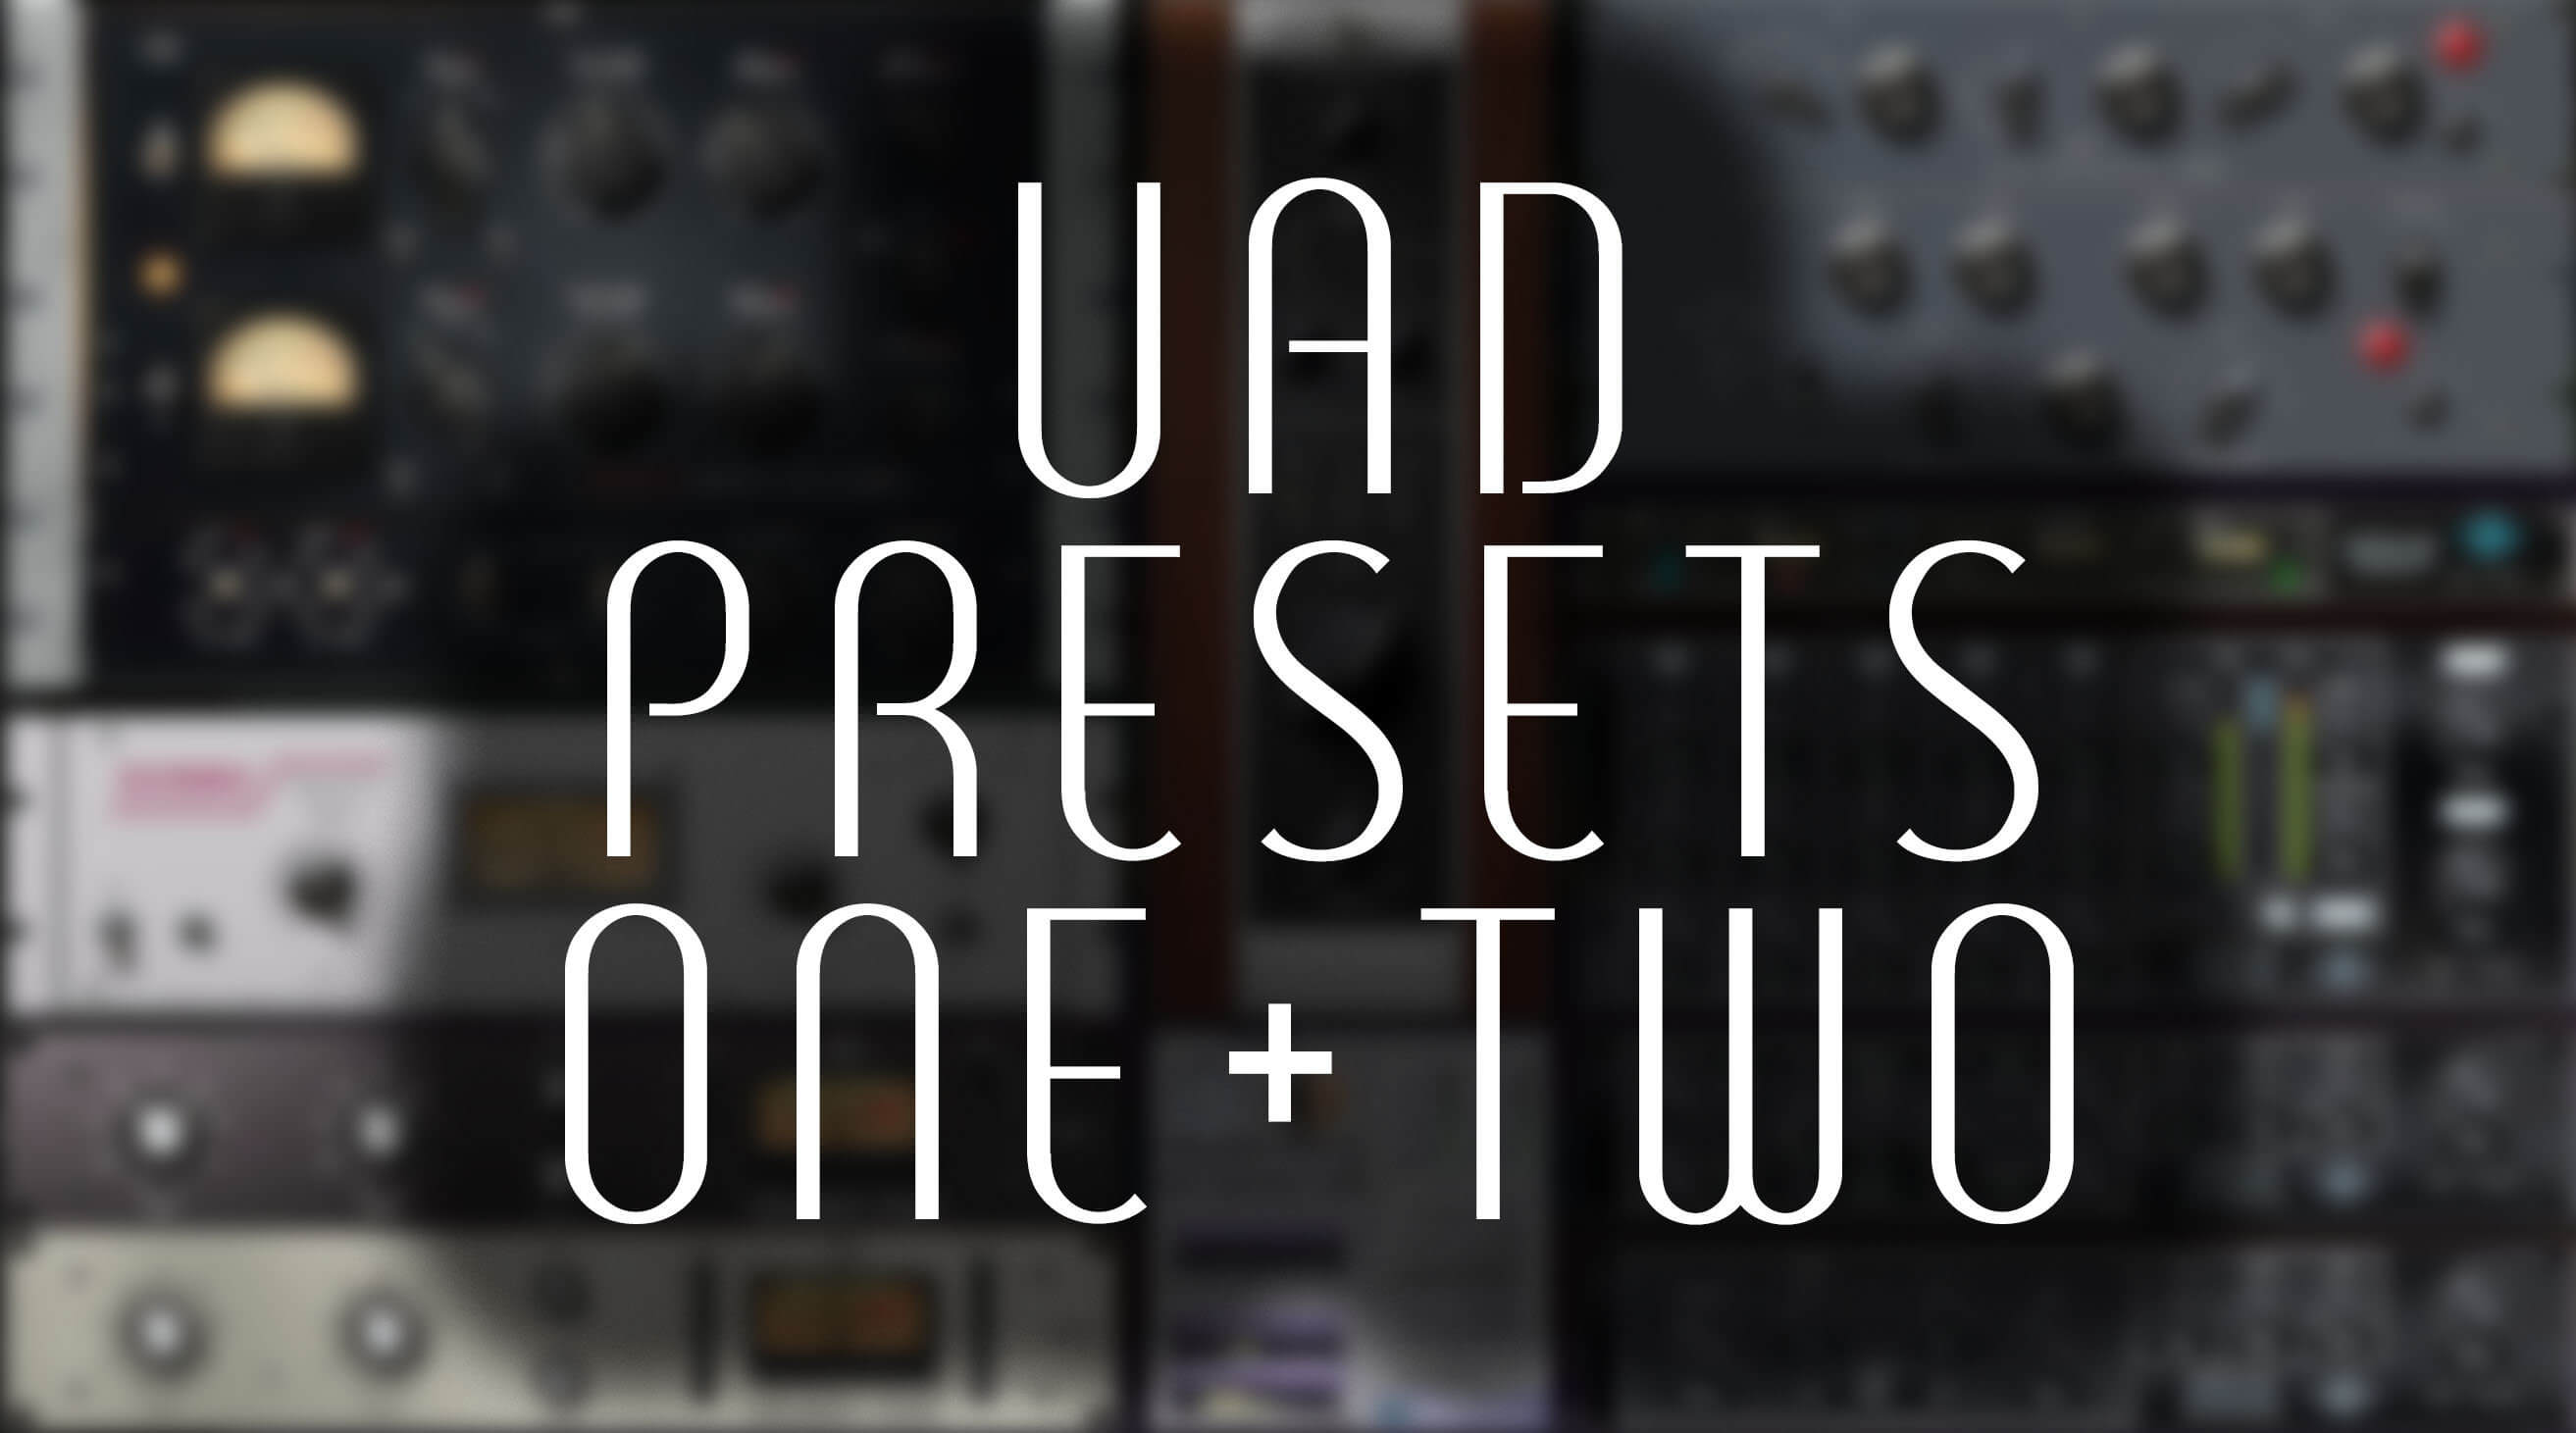 Penny Cool Studios launches UAD Plugins - Presets 1 + 2